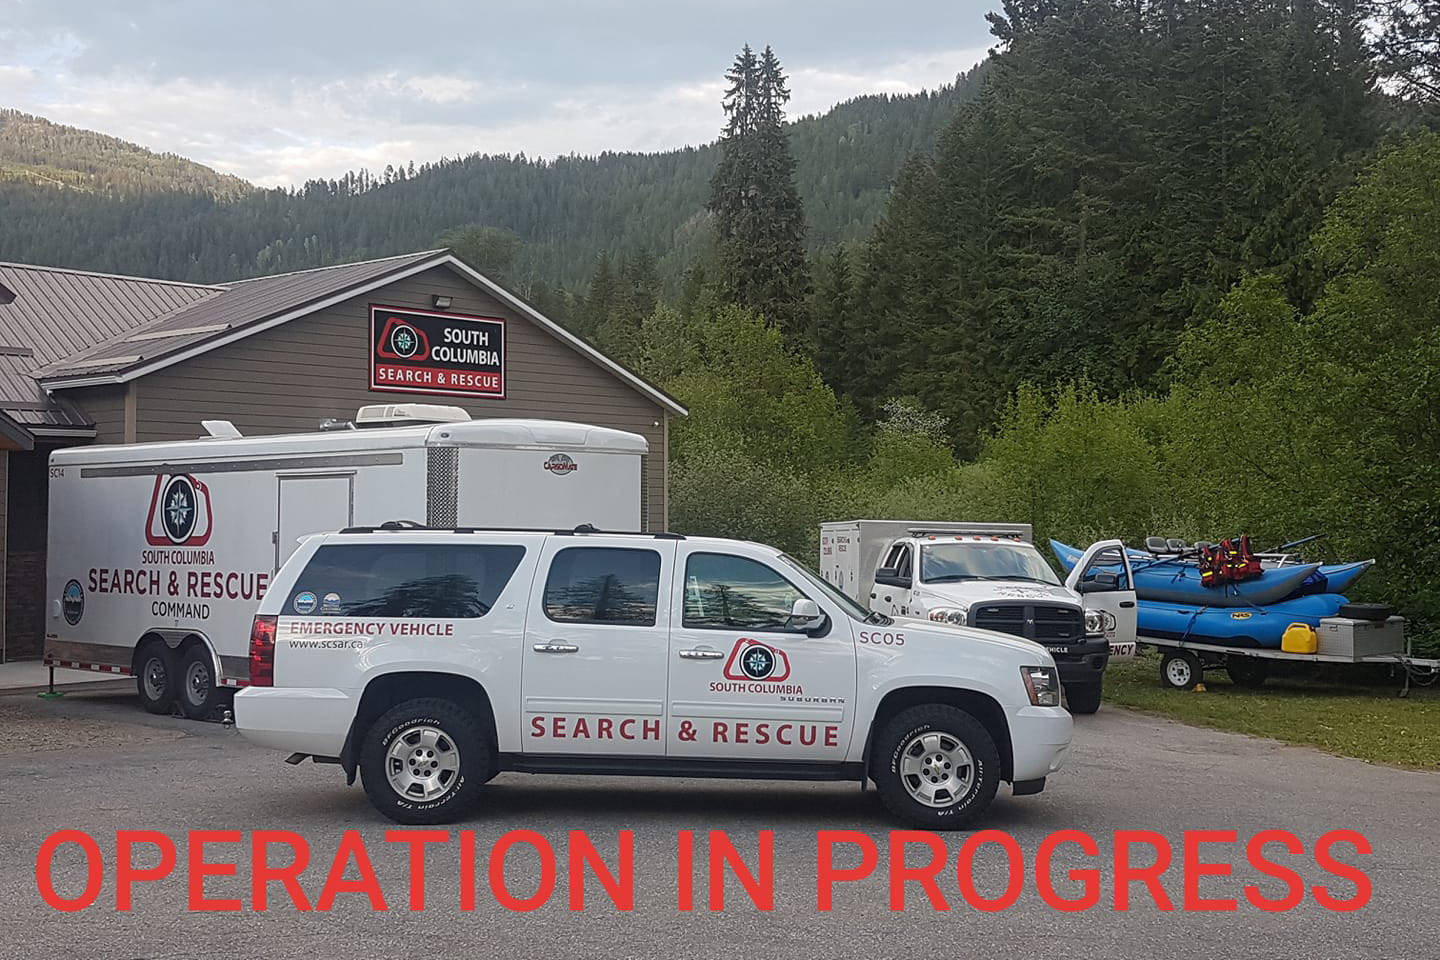 UPDATE: Skier found after disappearing at Red Mountain resort near Rossland